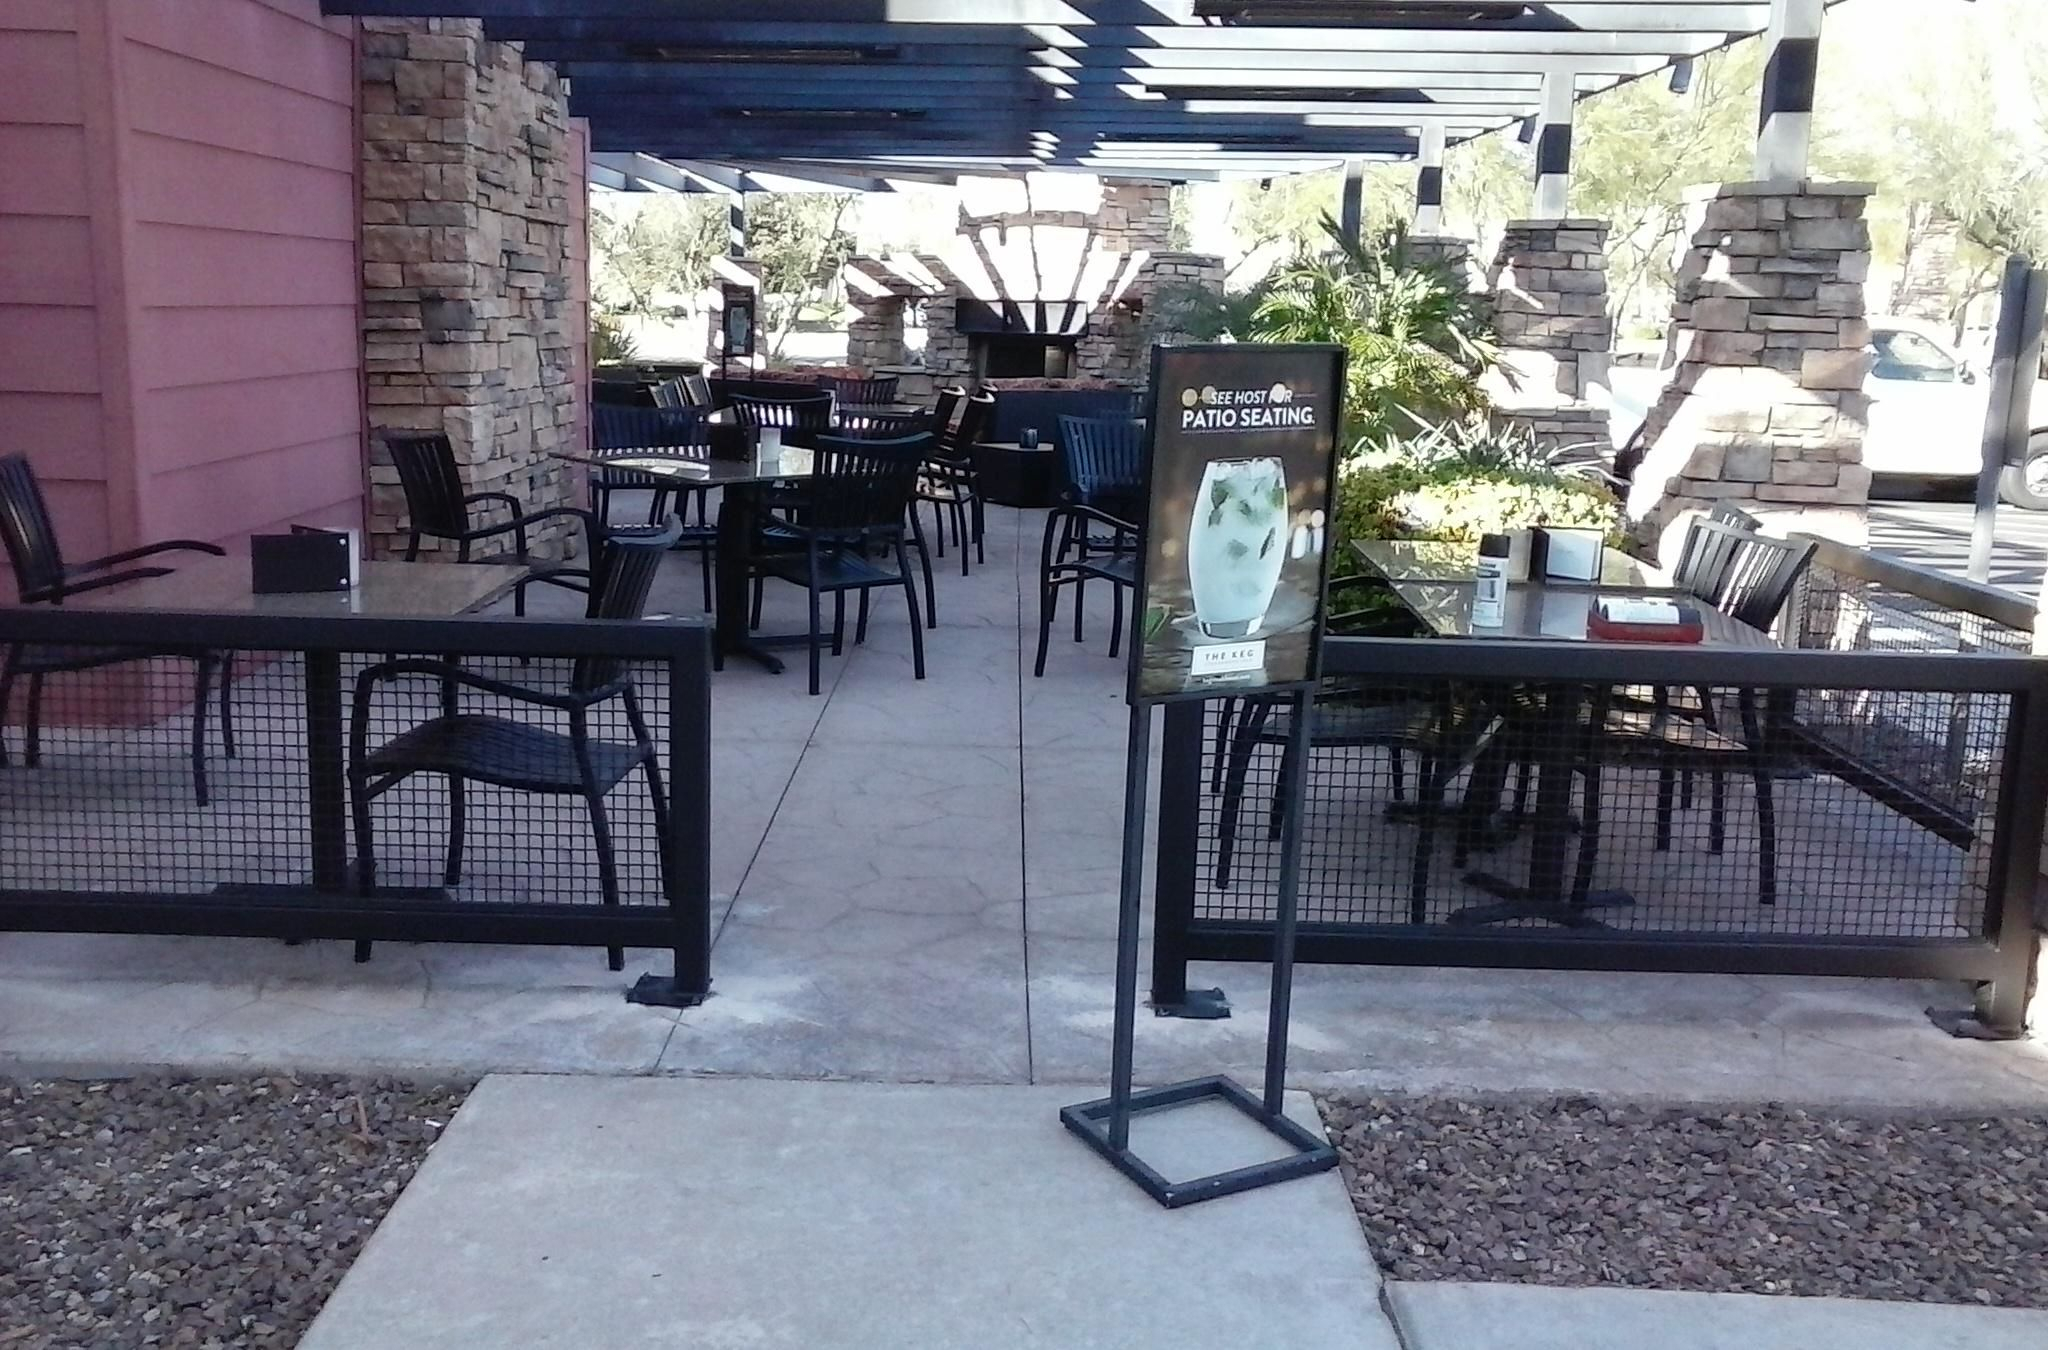 Outdoor Restaurant Patio Fencing Fences Ideas intended for size 2048 X 1350